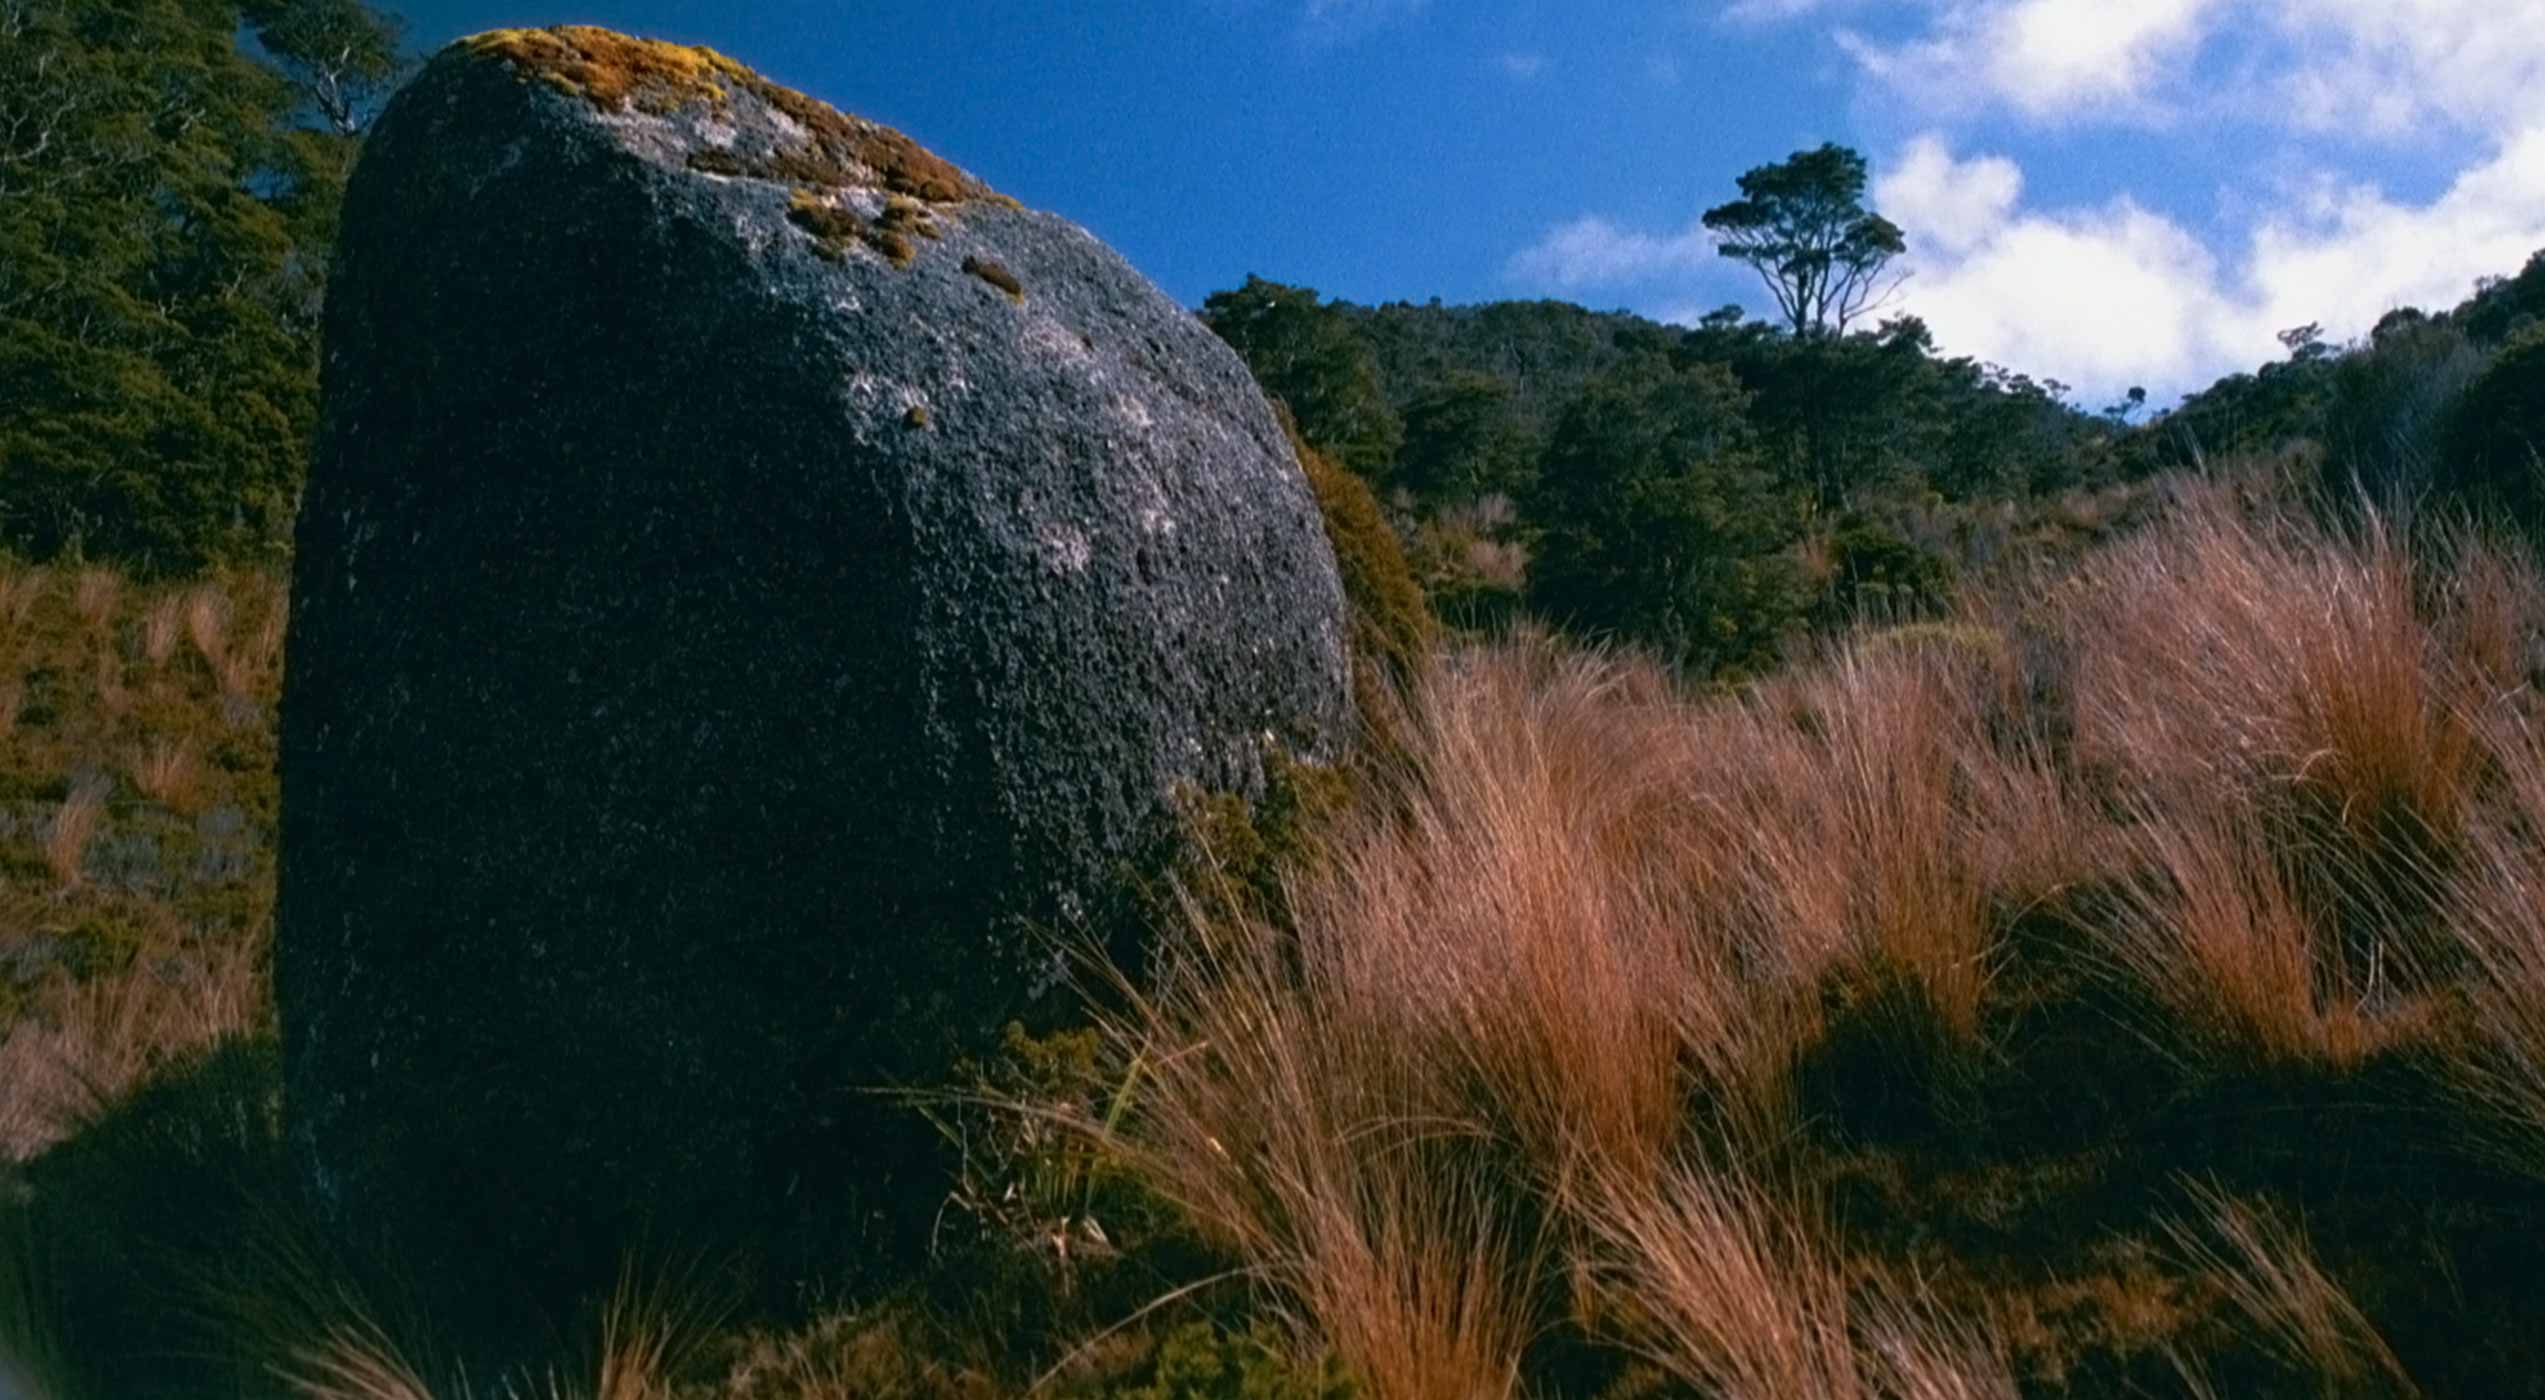 Blue Rock at Heaphy Track